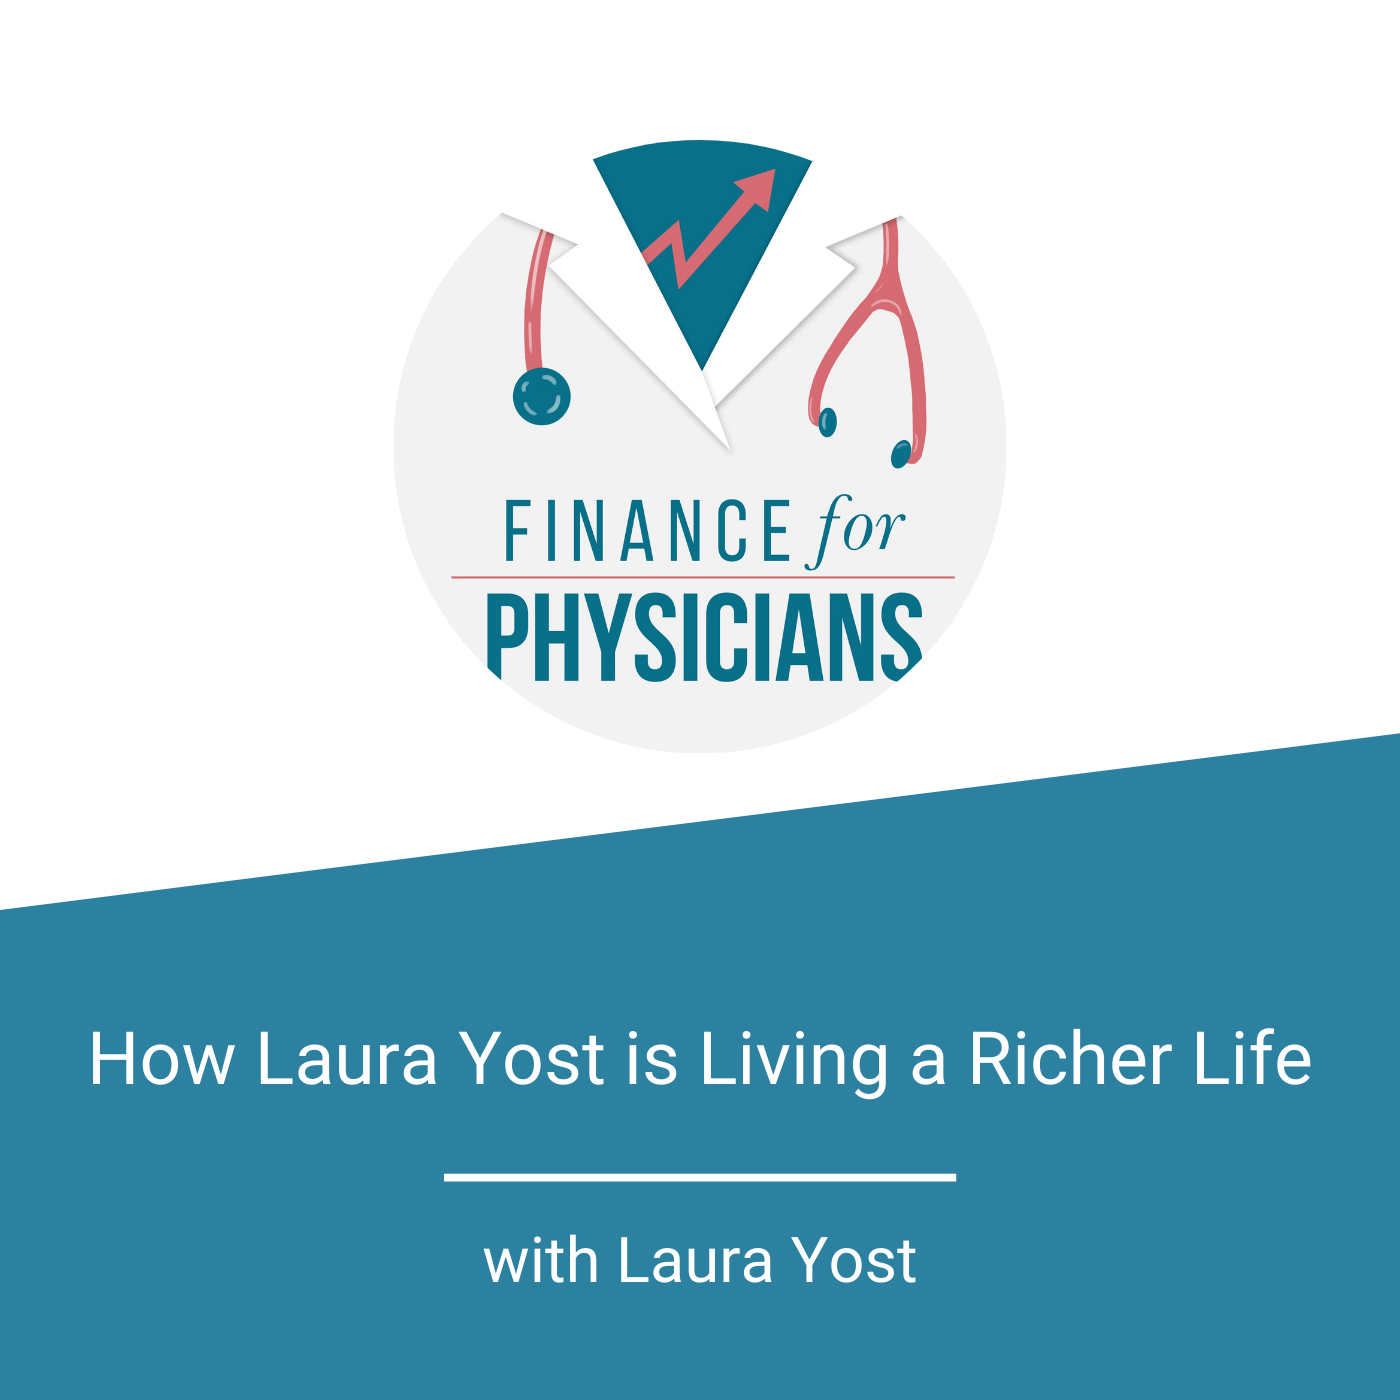 Featured Image - How Laura Yost is Living a Richer Life